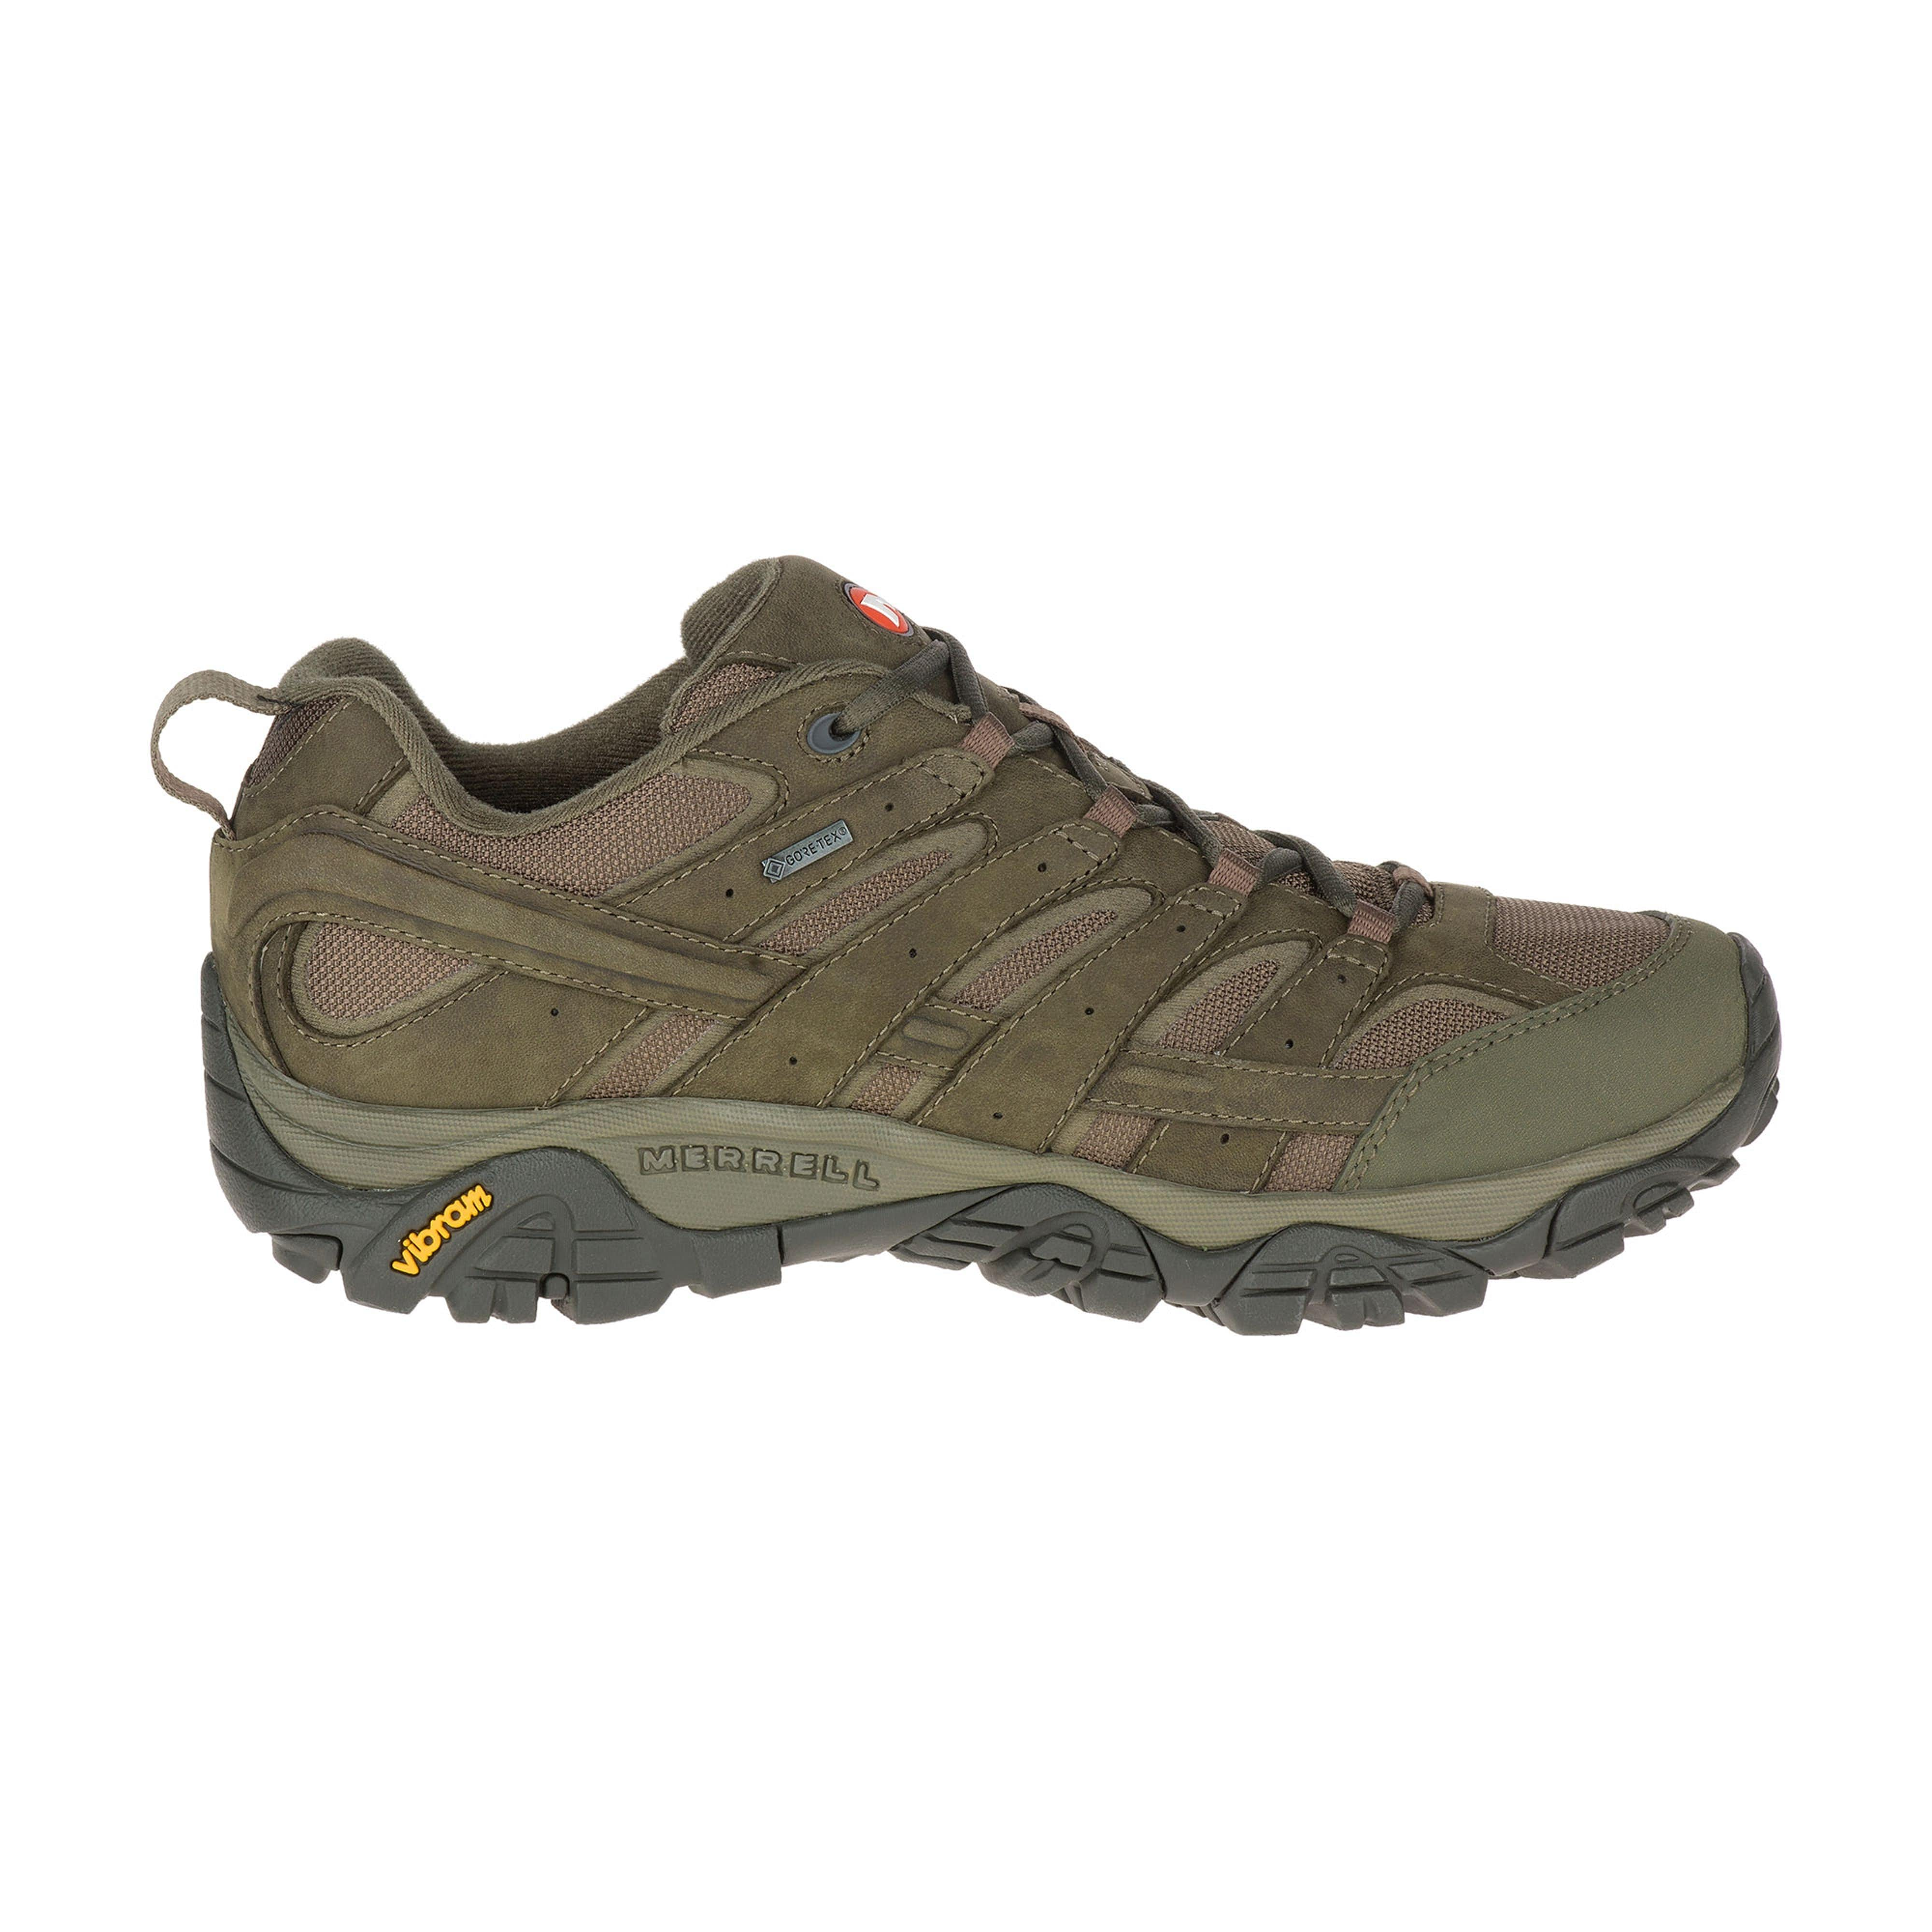 0ca571d66a4 Merrell Moab 2 Smooth GTX Mens